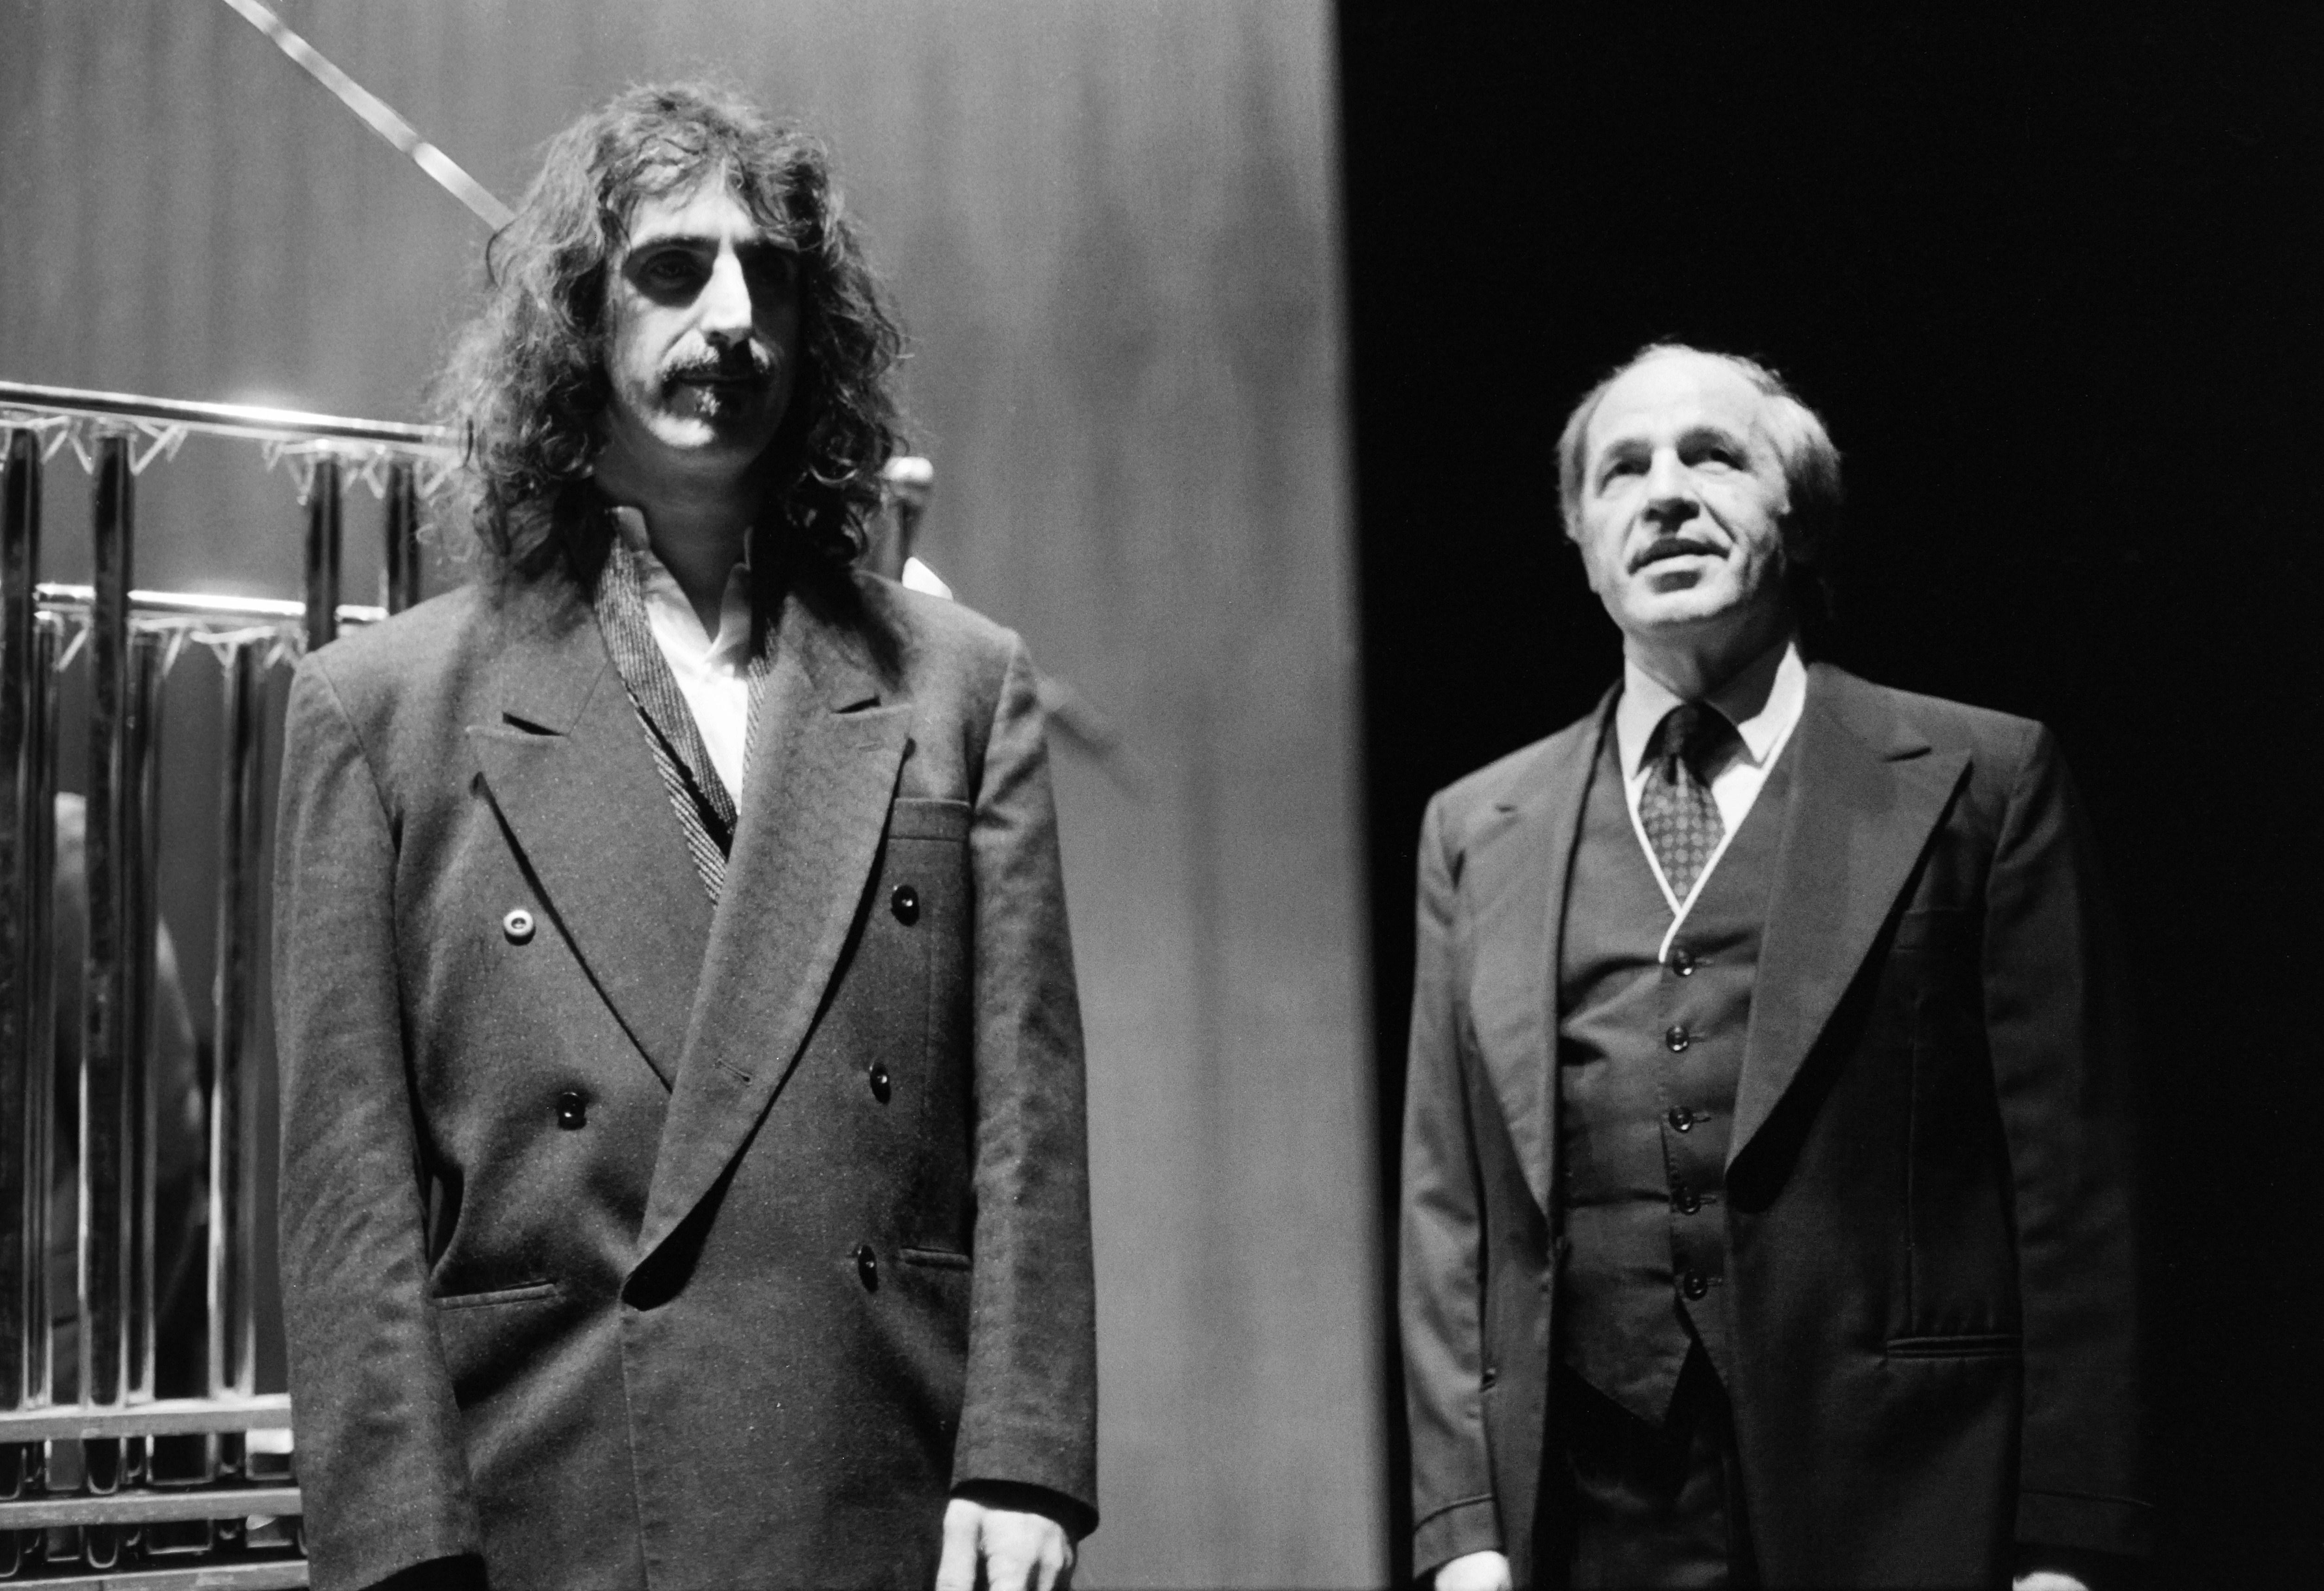 pierre boulez and frank zappa